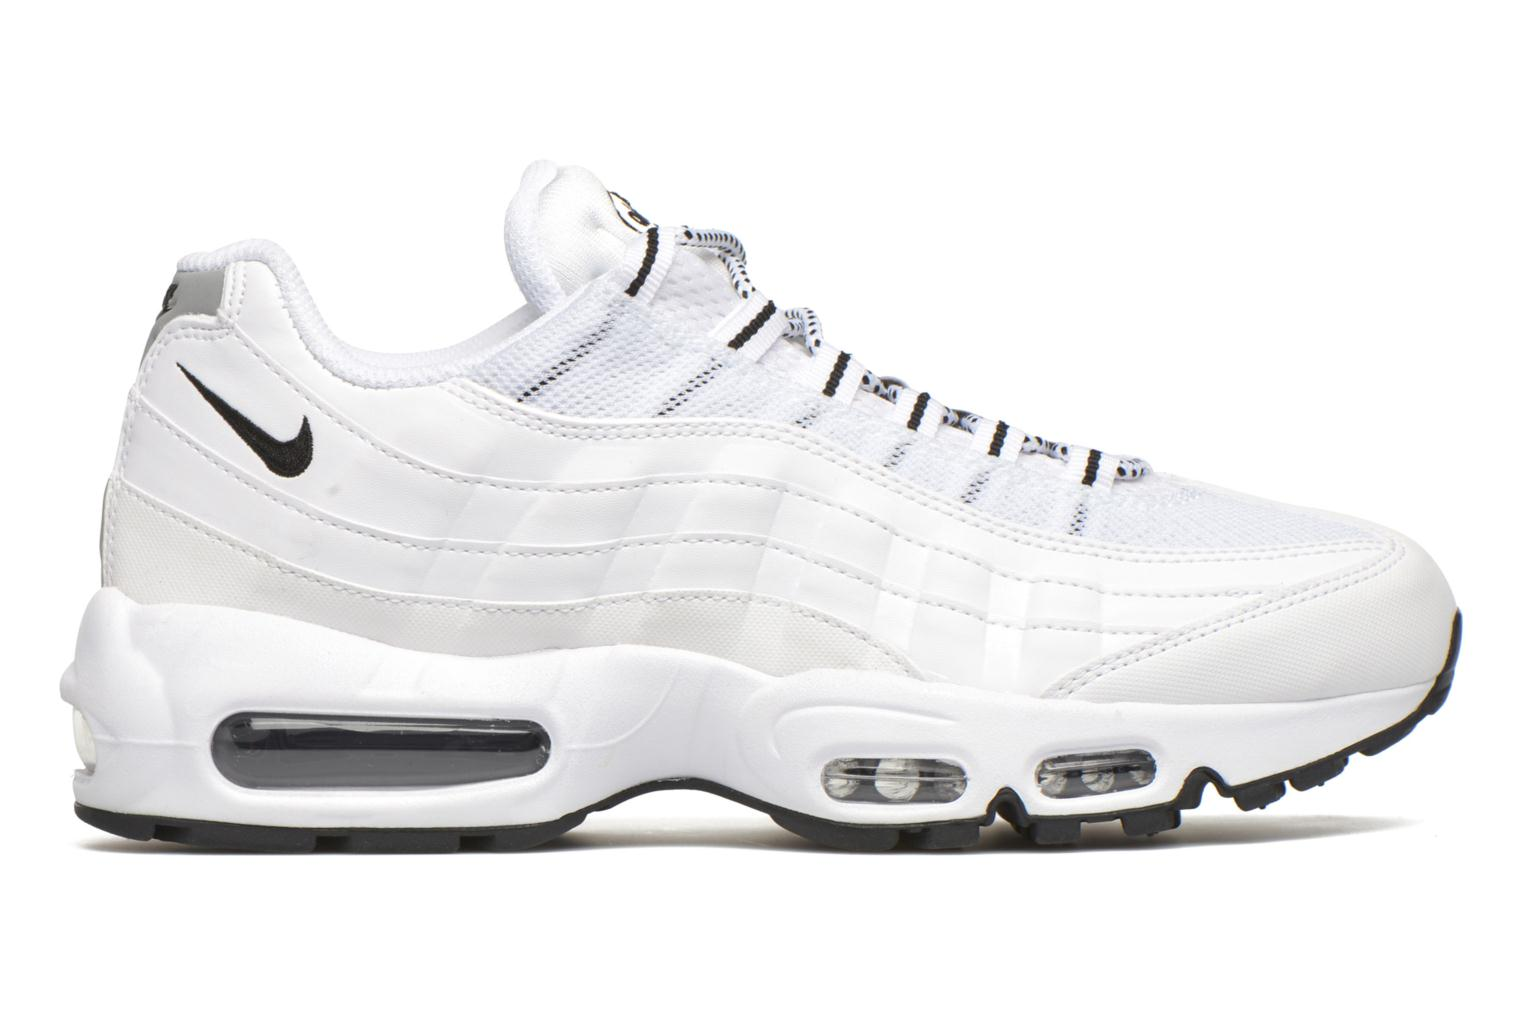 Air Max '95 White/Black-Black